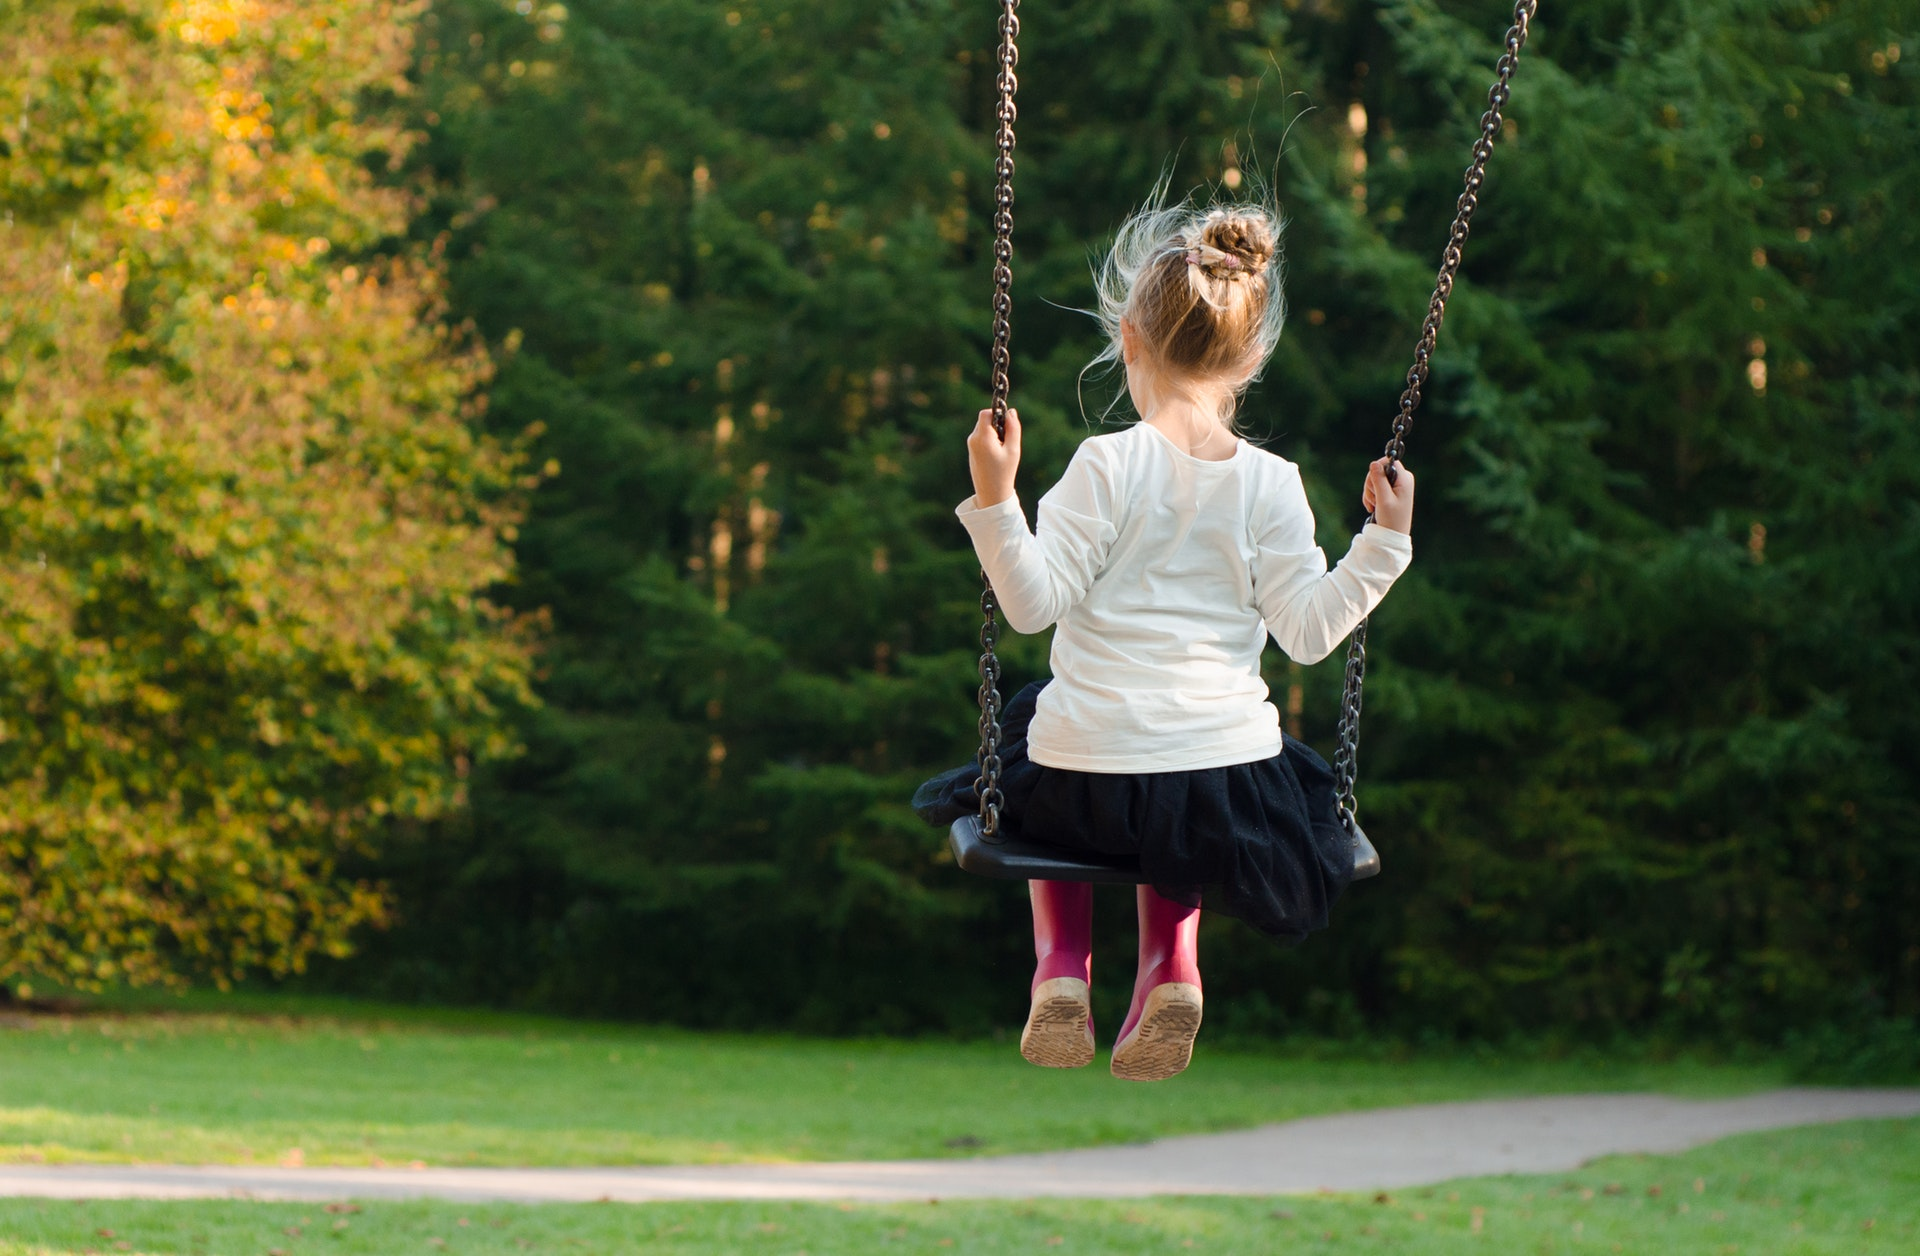 an image of a girl on swing